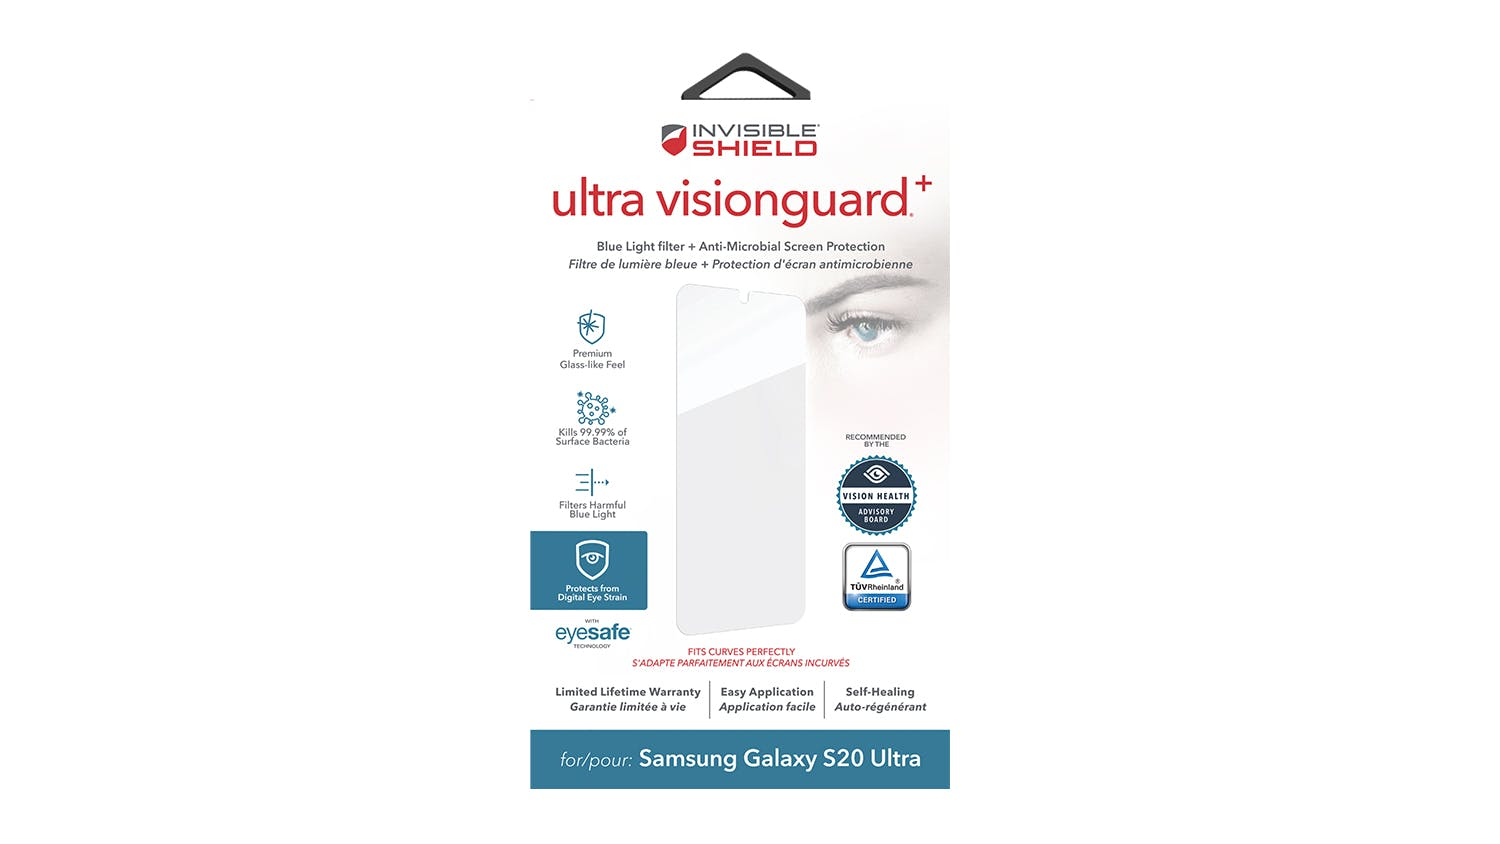 InvisibleShield Ultra VisionGuard+ Screen Protector for Samsung Galaxy S20 Ultra